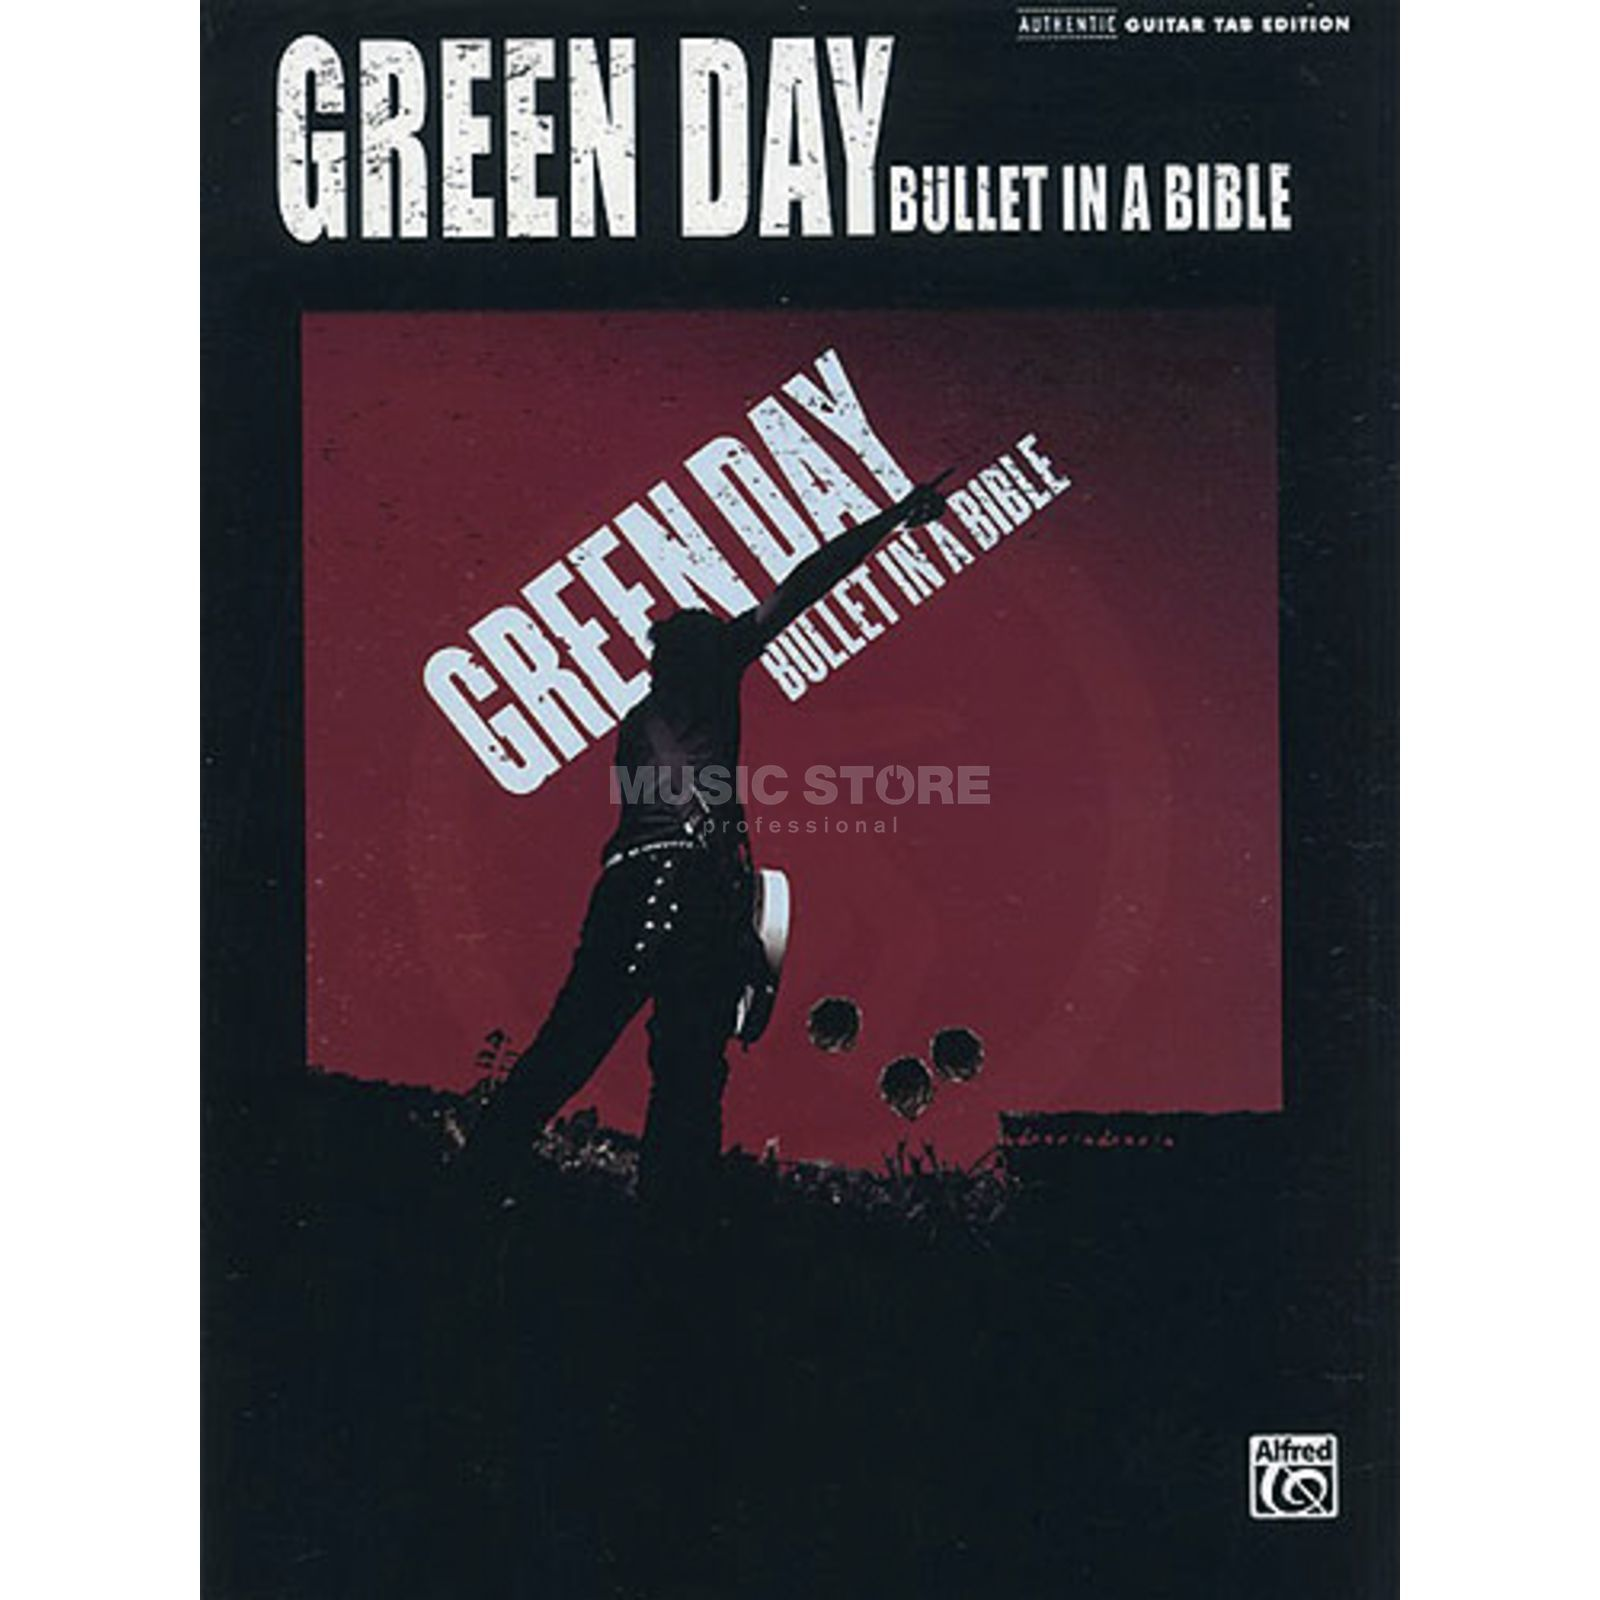 Alfred Music Green Day: Bullet In A Bible Produktbild